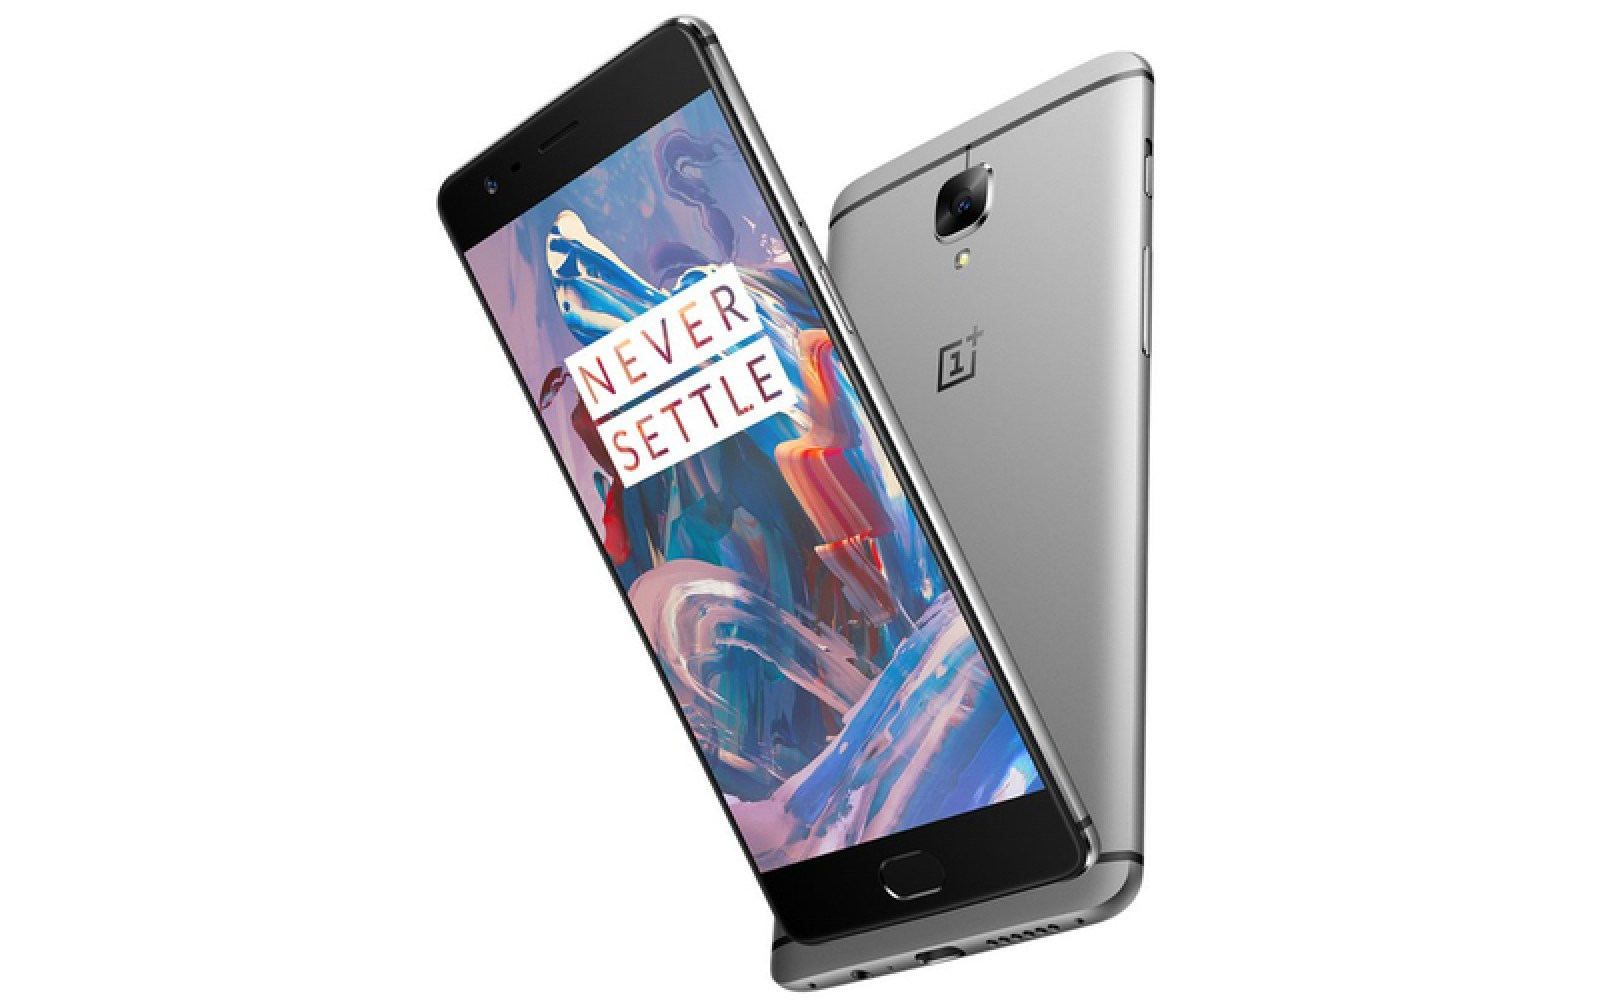 OnePlus is ditching invite system with OnePlus 3, international launch on June 14 inside The Loop [Video]